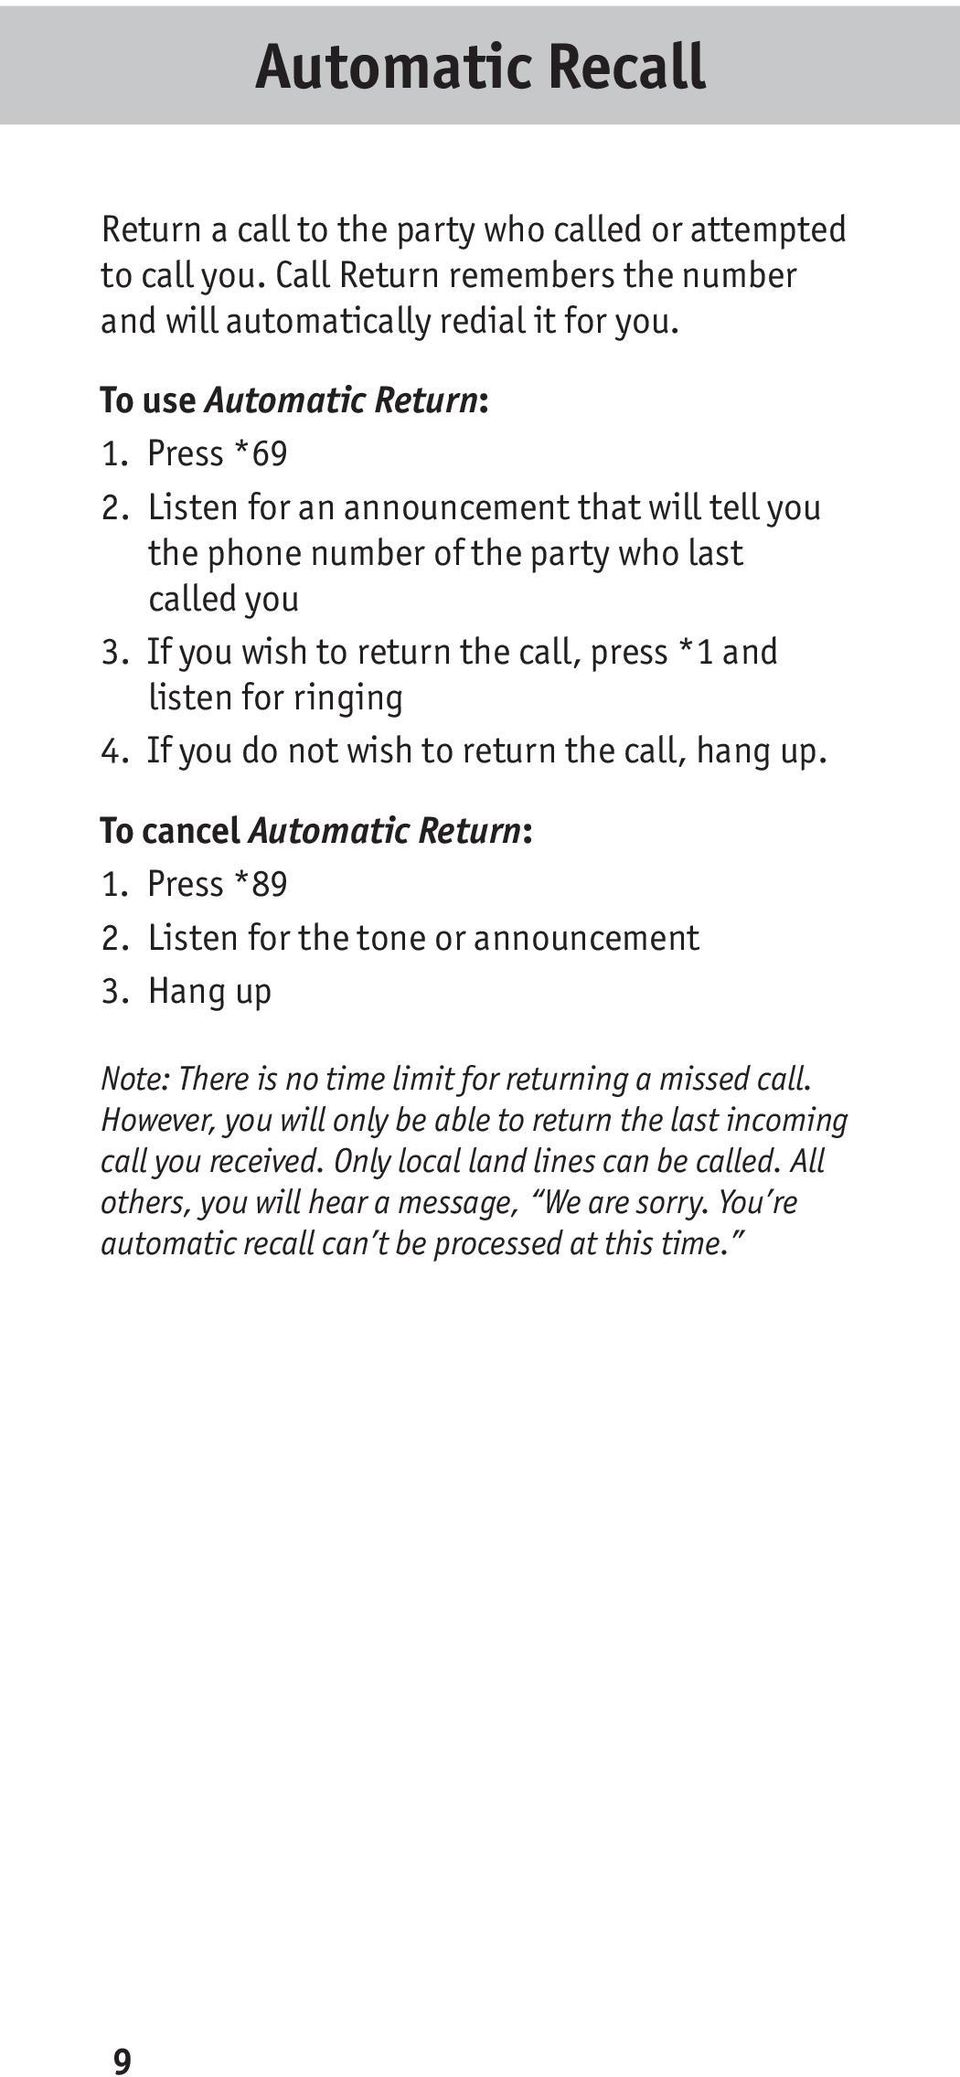 If you do not wish to return the call, hang up. To cancel Automatic Return: 1. Press *89 2. Listen for the tone or announcement 3. Hang up Note: There is no time limit for returning a missed call.